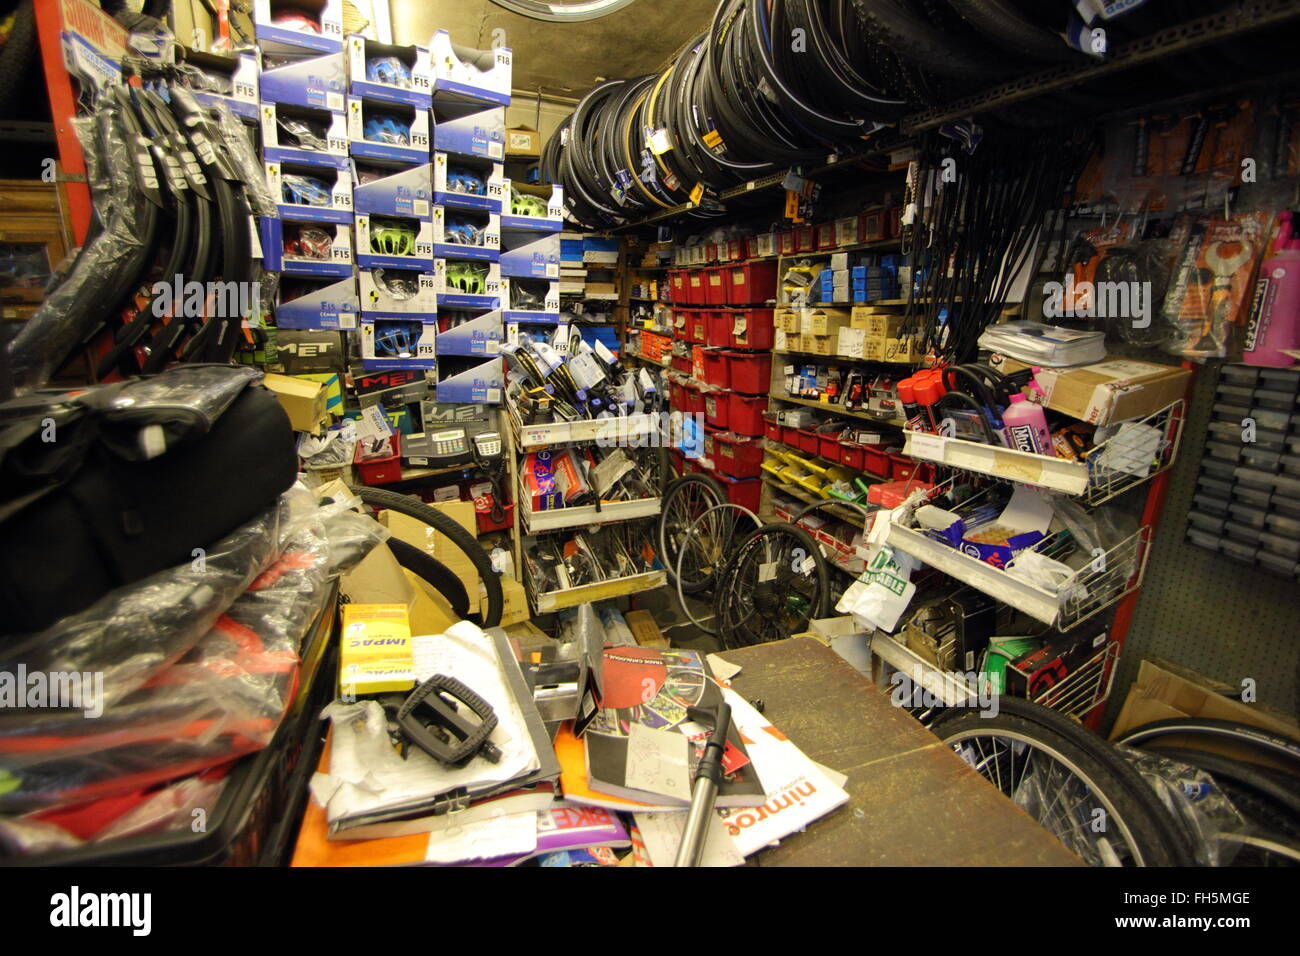 Inside A E Butterworth independent bicycle shop in Abbeydale, Sheffield England UK - 2016 - Stock Image